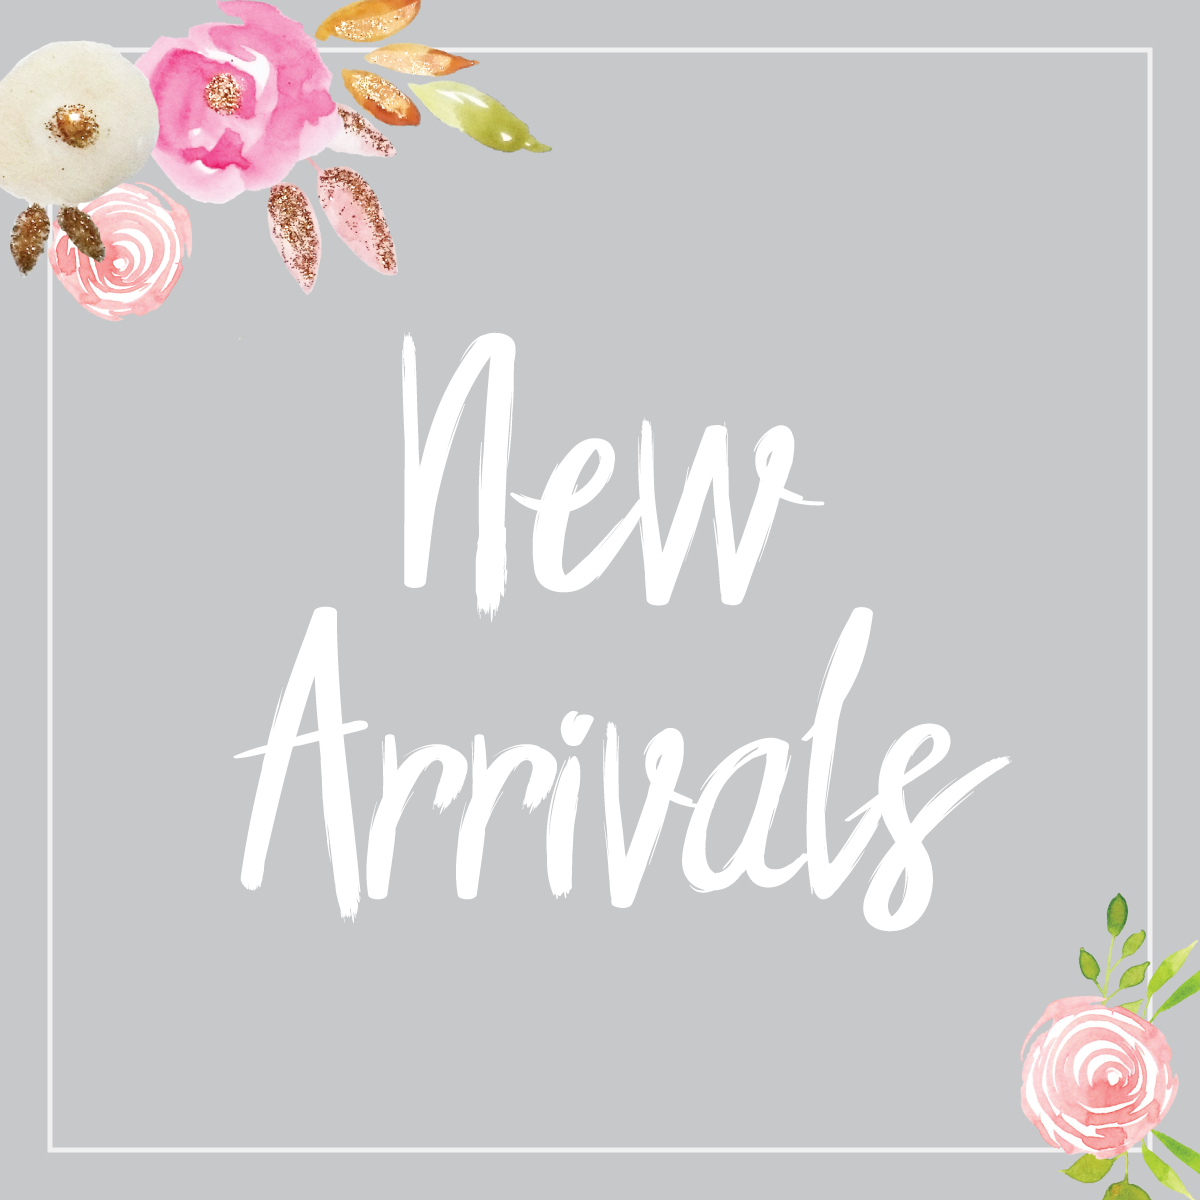 Our Inventory Is Blooming Check Out Our New Arrivals Newarrivals Casanovasdownfall Boutiquef Online Shopping Quotes Shopping Quotes Small Business Quotes